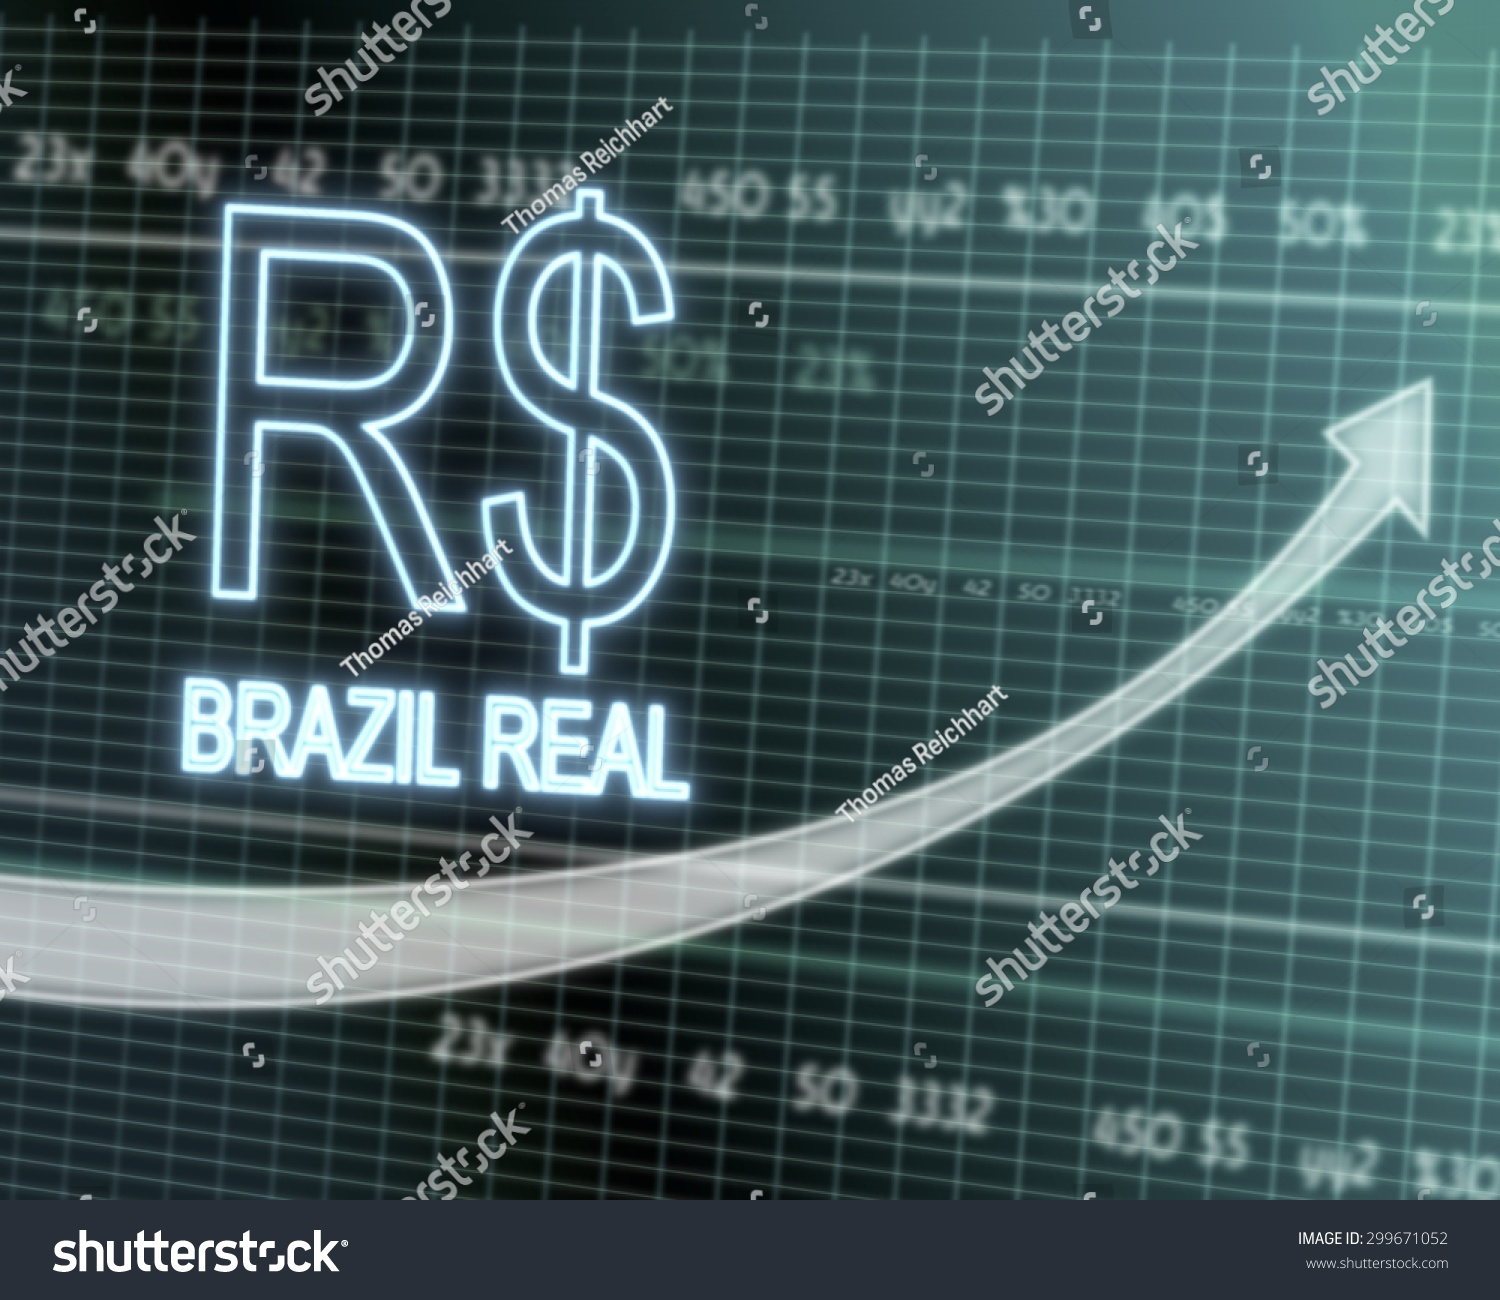 Successful investmanet chart brazil real symbol stock illustration successful investmanet chart with a brazil real symbol on a stock market table with rising graph buycottarizona Images